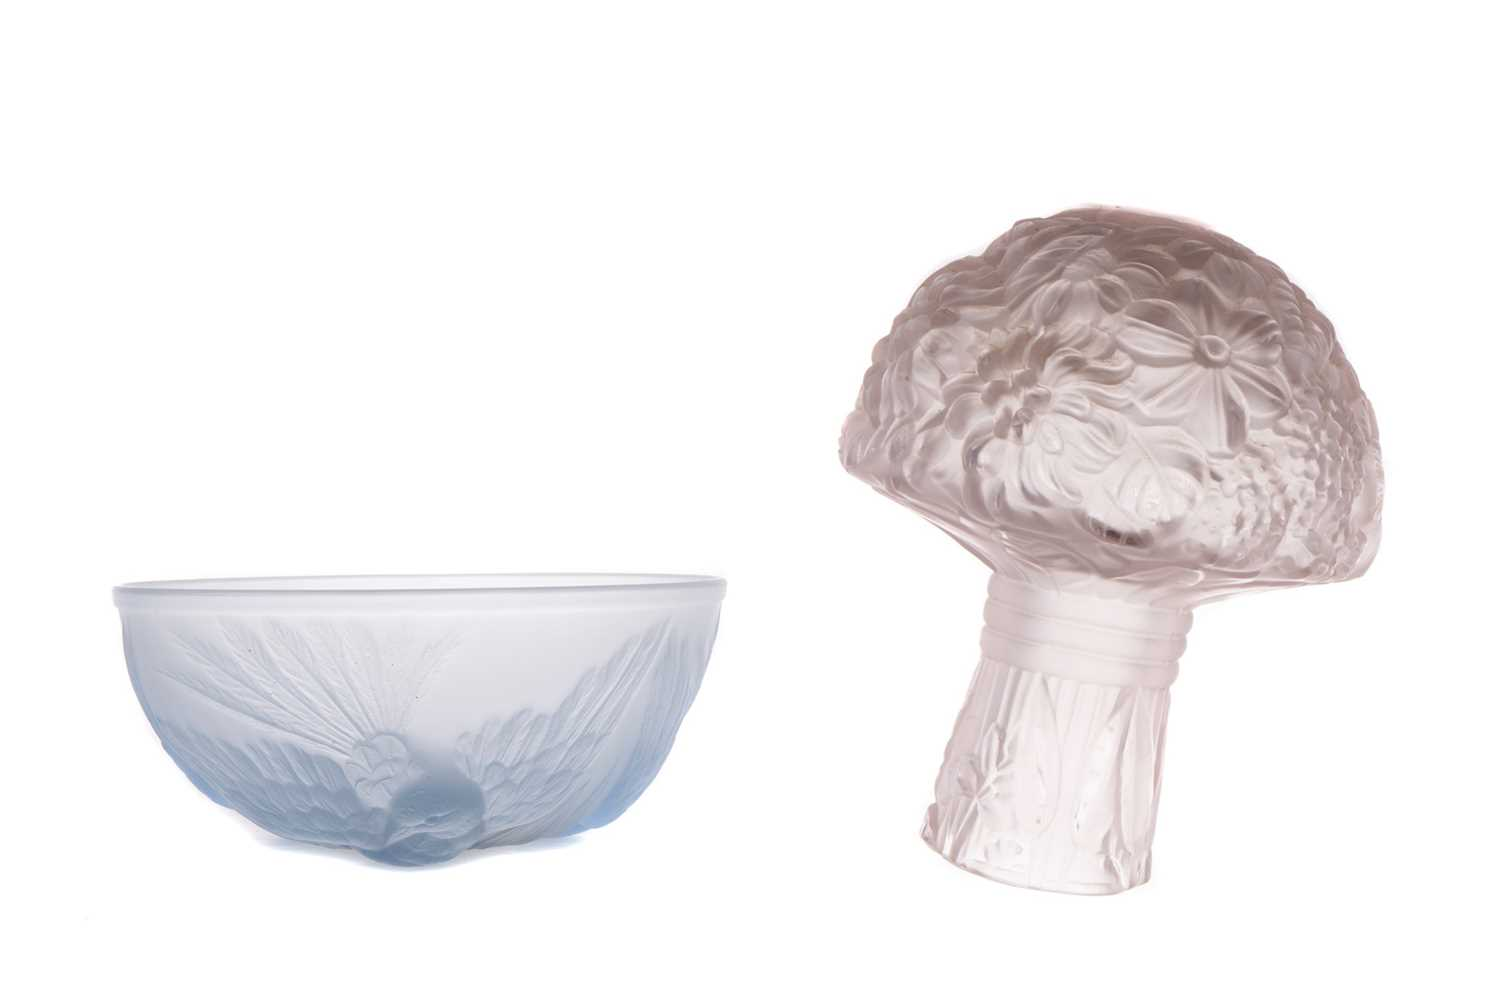 Lot 1057 - AN EARLY 20TH CENTURY FRENCH FROSTED GLASS BOUQUET OF FLOWERS AND BOWL